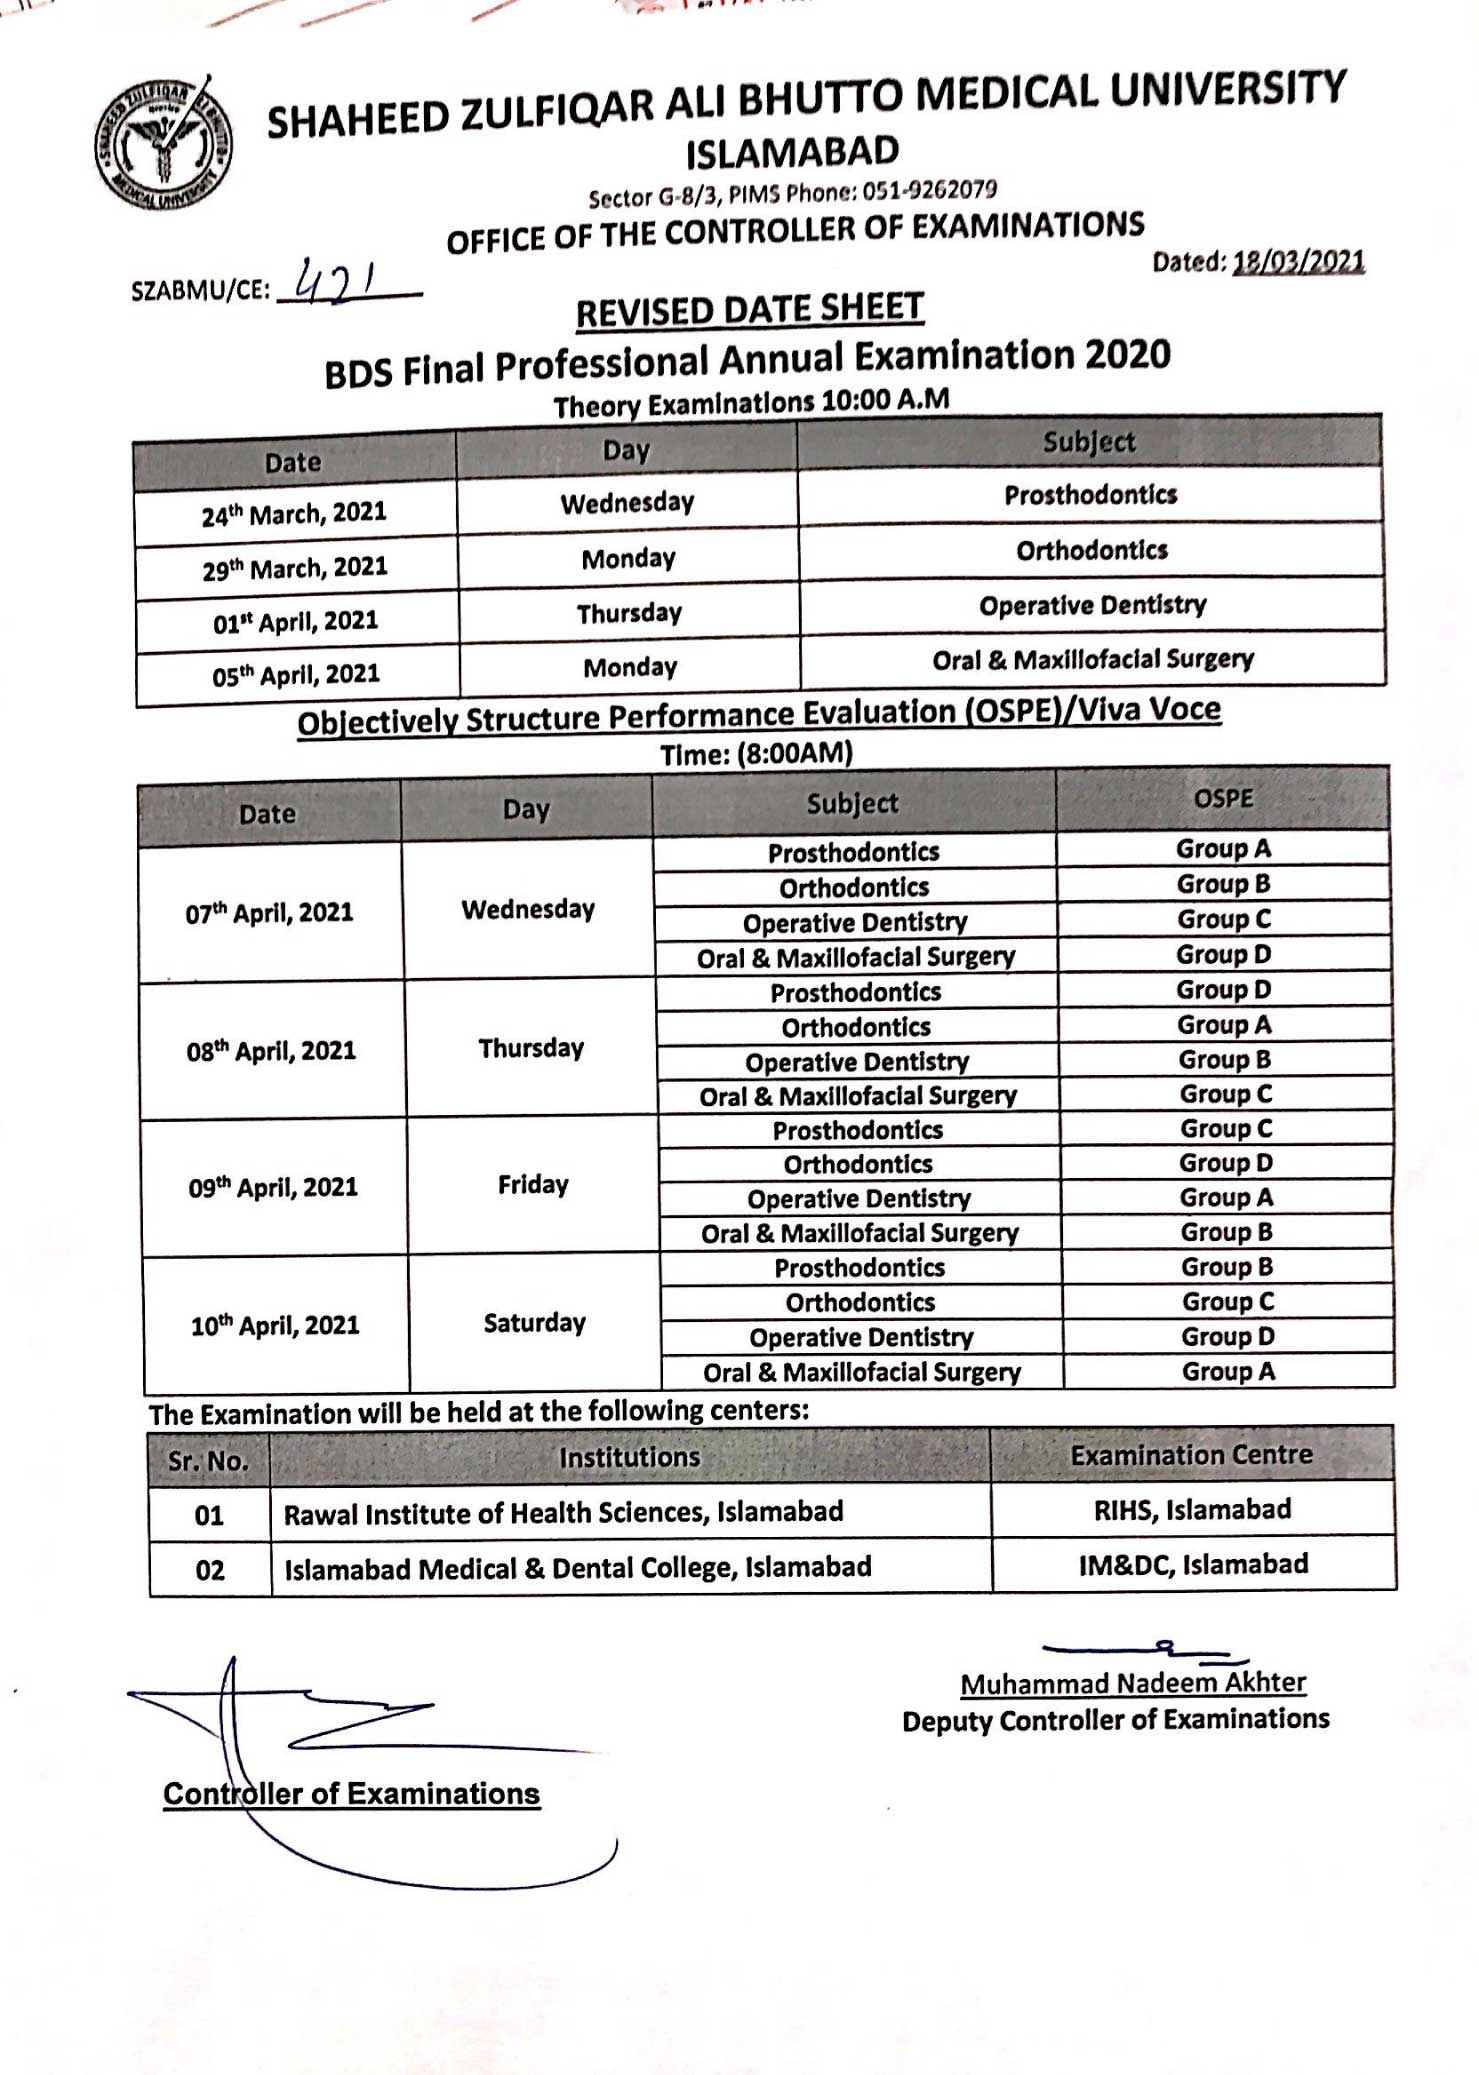 BDS Final Professional Annual Examination 2020